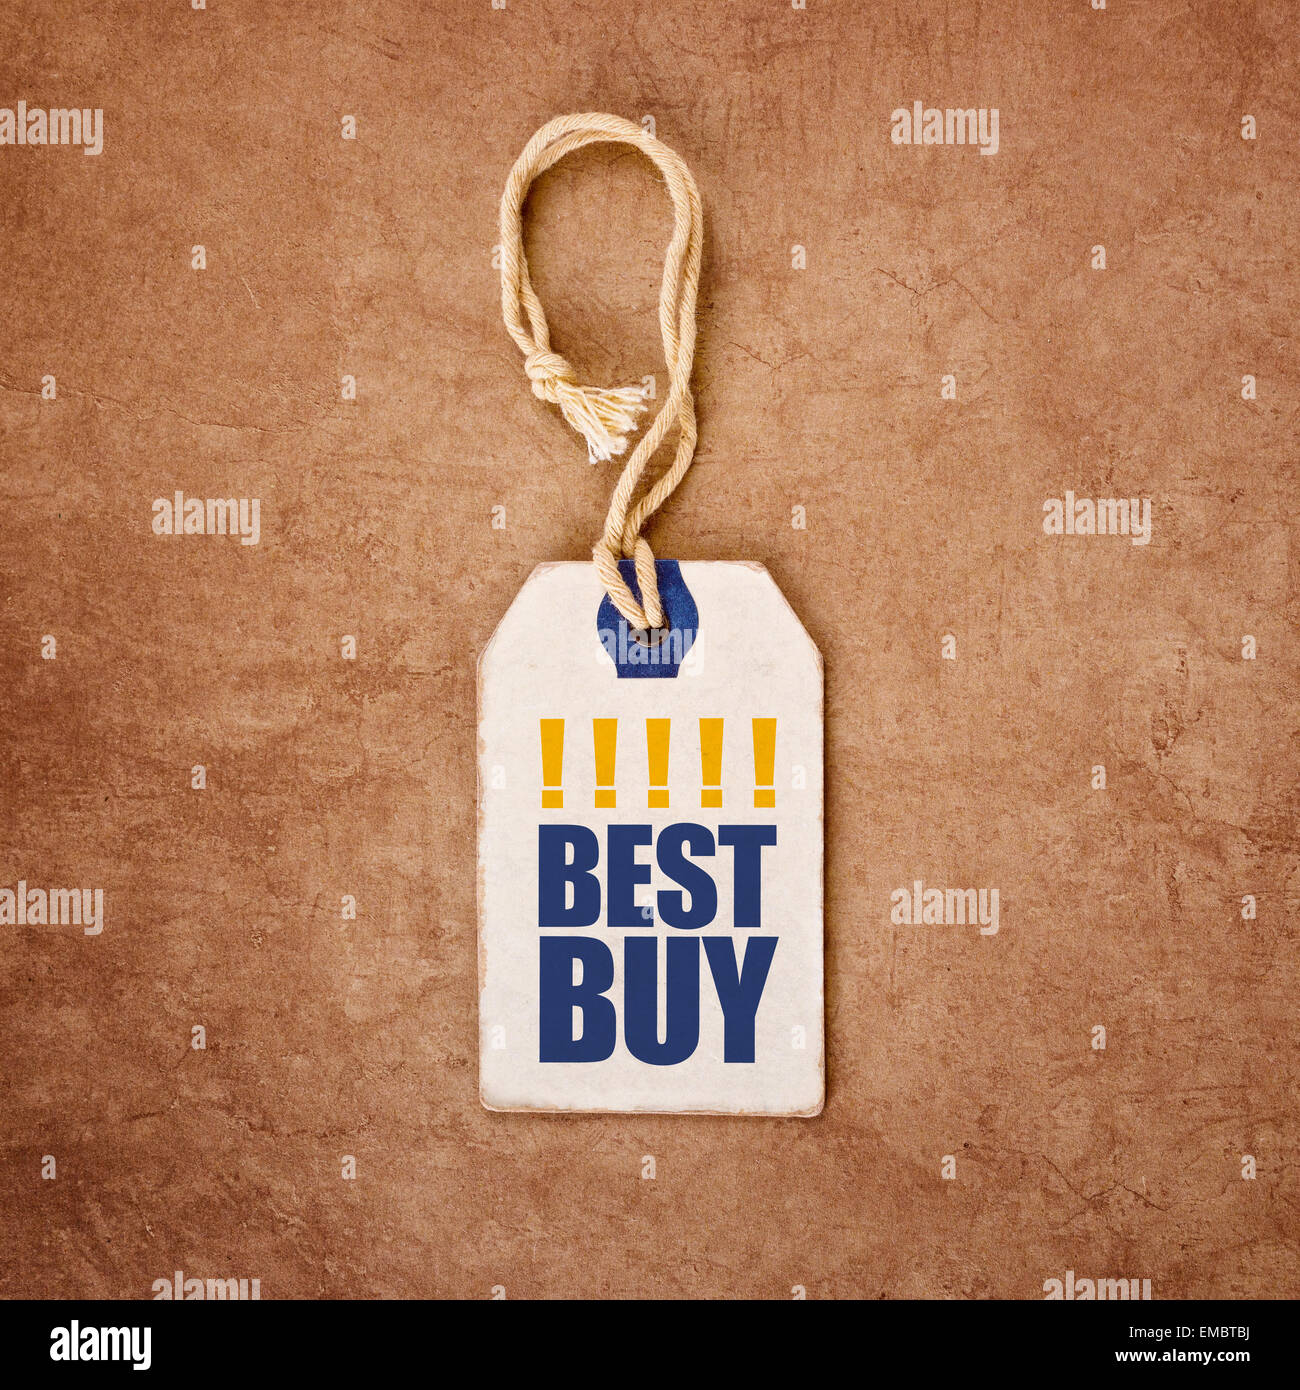 Vintage Price Tag Label with Best Buy Title for Shopping Recommendation Concept, Top View, Filtered and Toned image - Stock Image